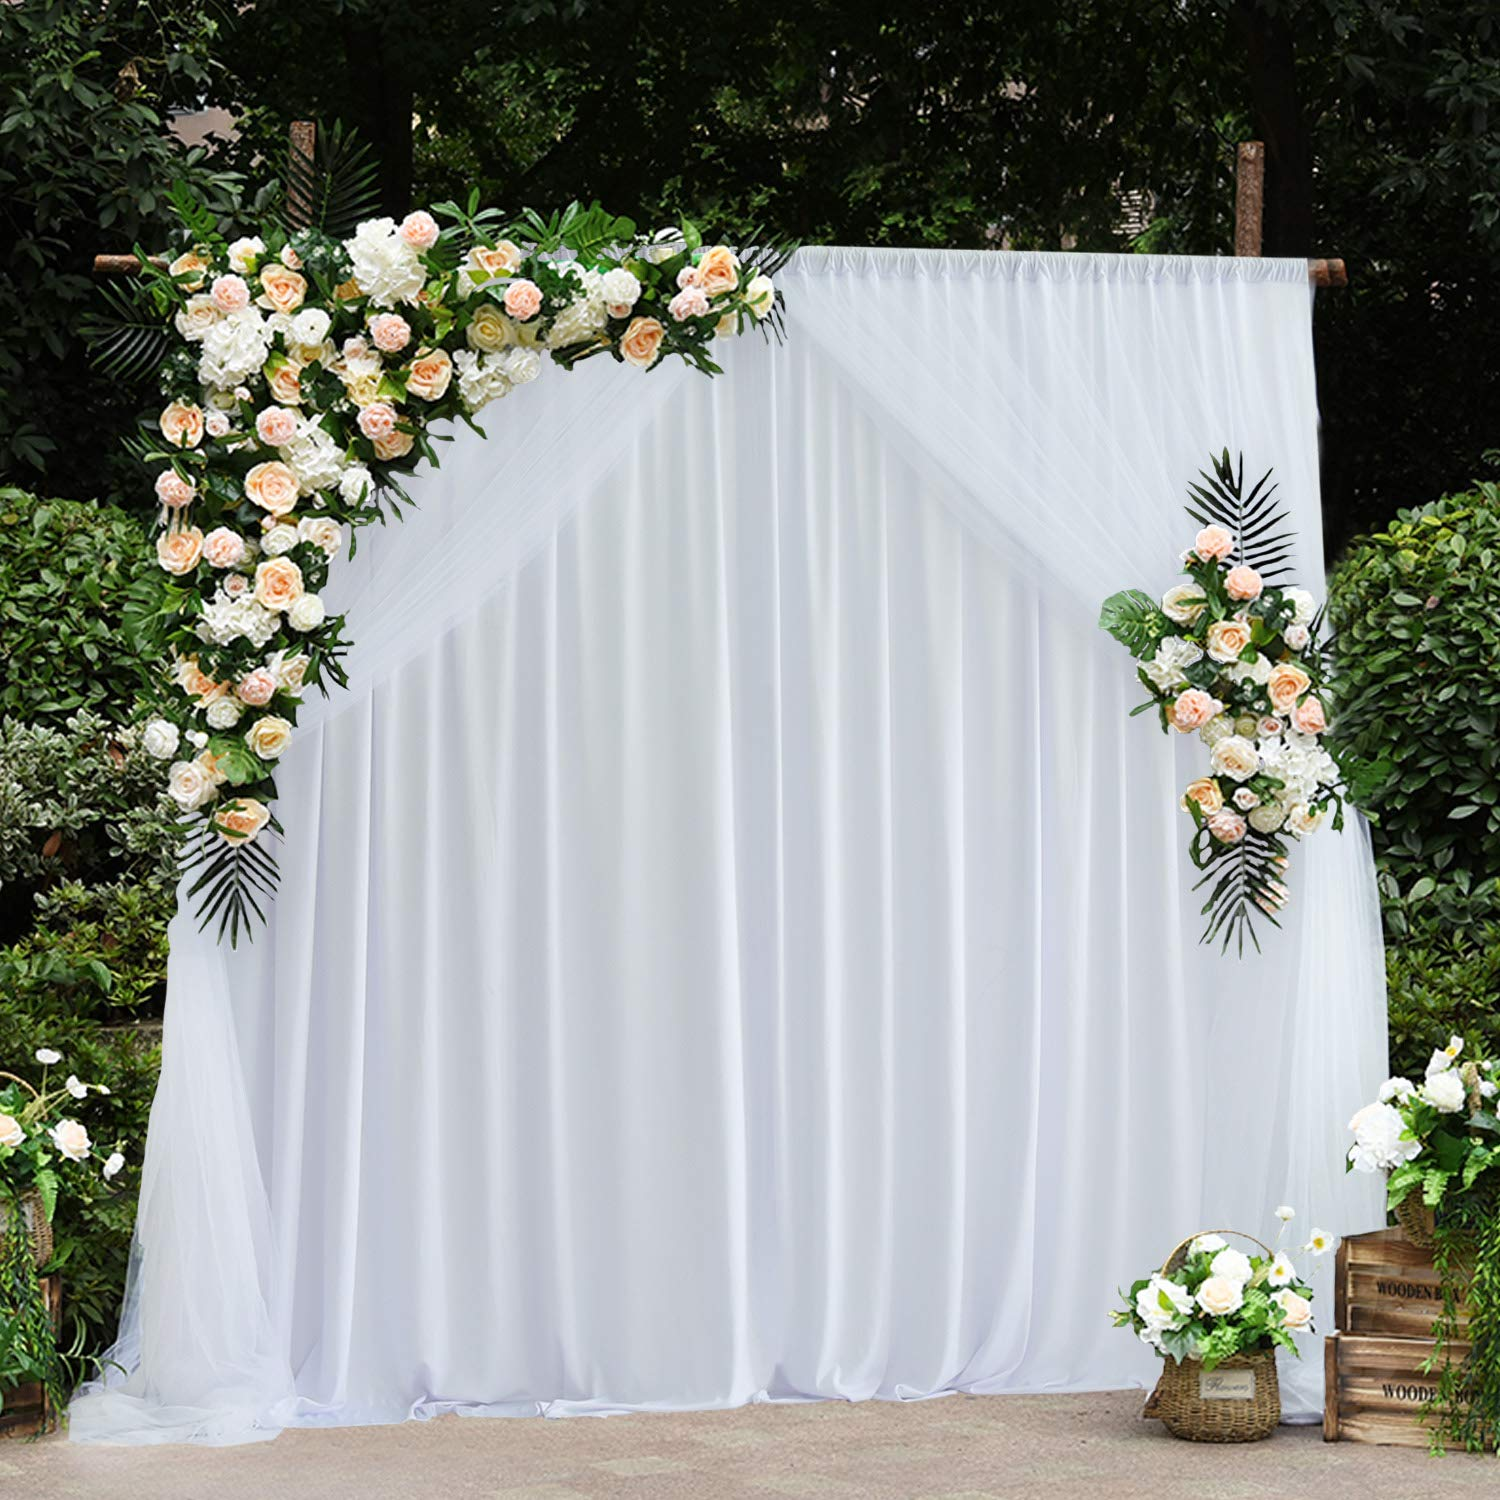 White Tulle Backdrop Curtains Baby Shower Birthday Amazon In Electronics